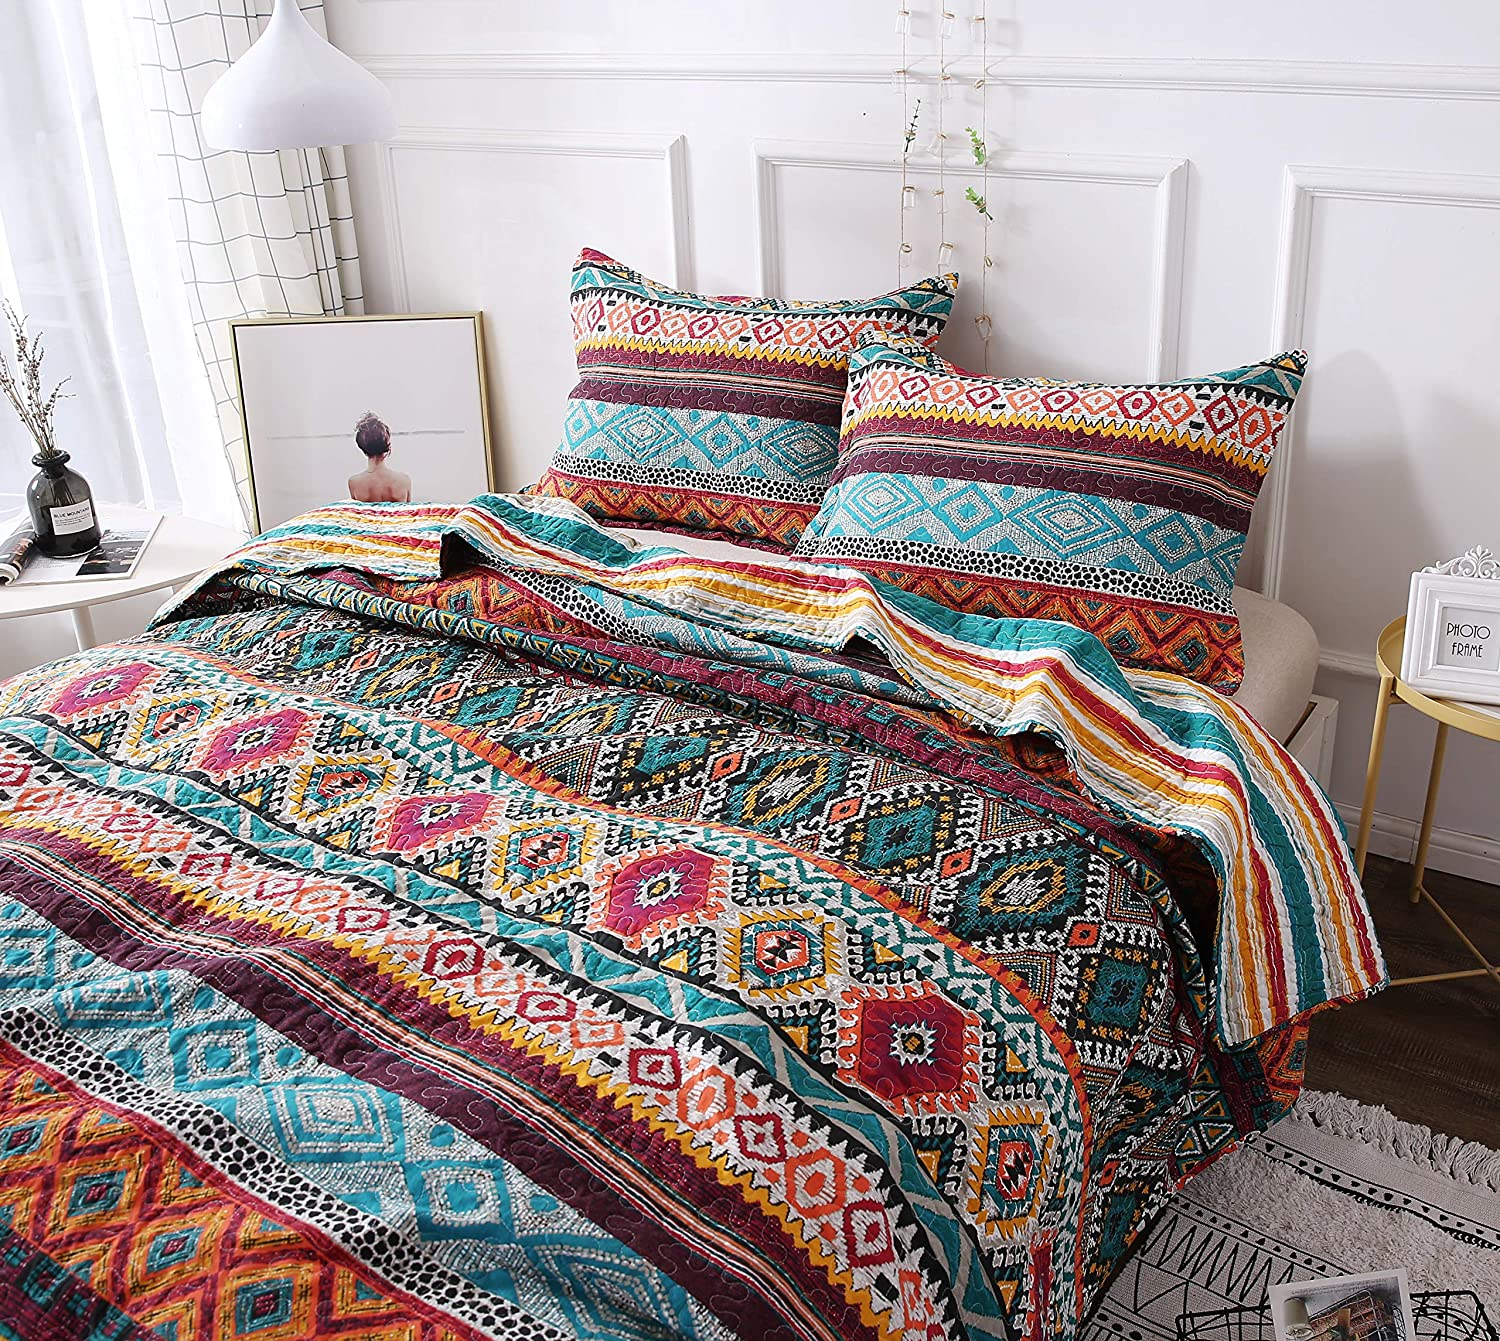 DaDa Bedding Southwestern Aztec Bedspread - Bohemian Desert Tribal Quilted Set - Bright Vibrant Multi Colorful Diamond - Twin - 2-Pieces 1048-T